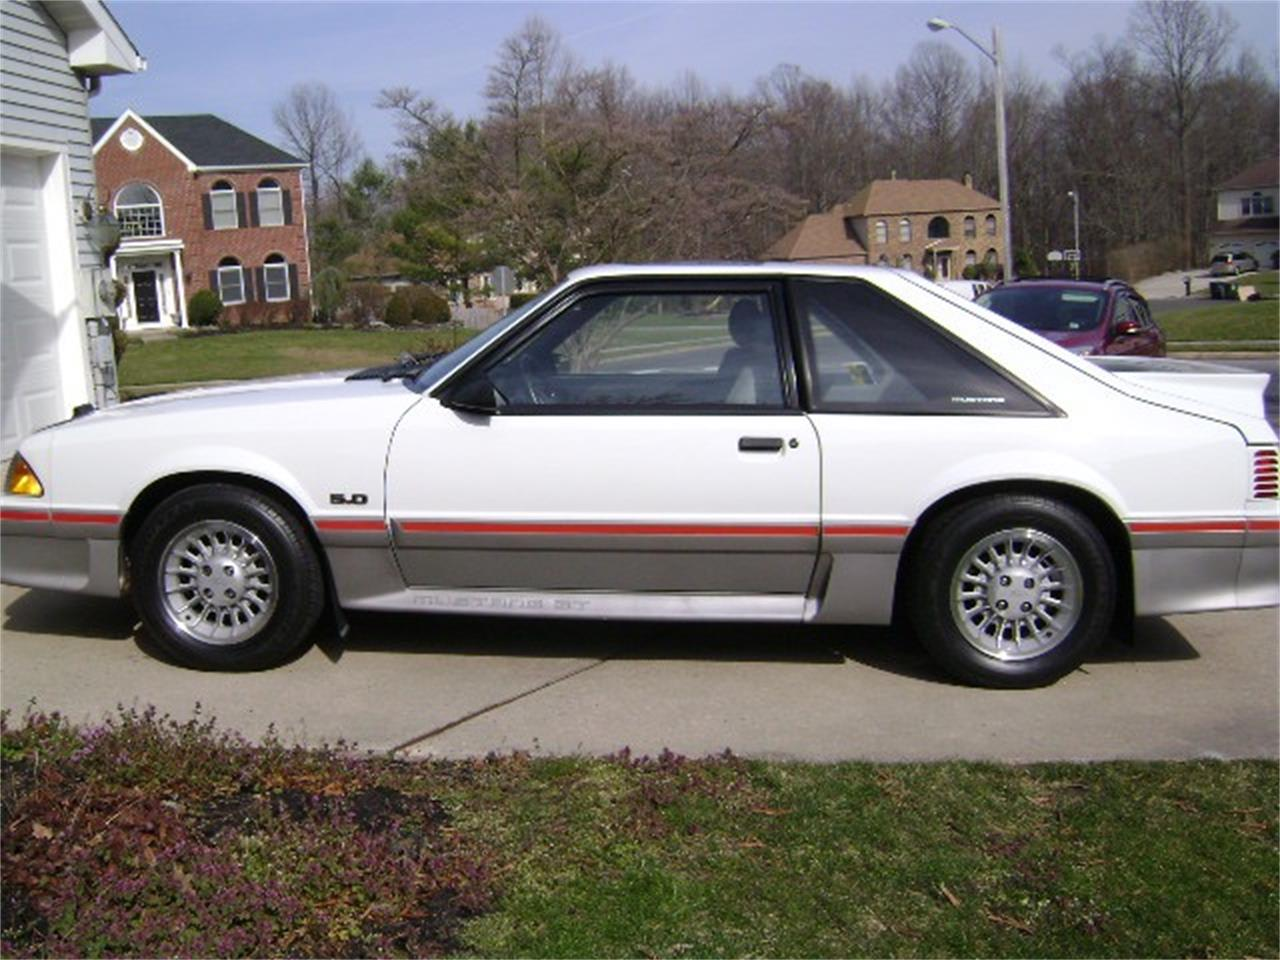 Large picture of 89 mustang gt kqd4